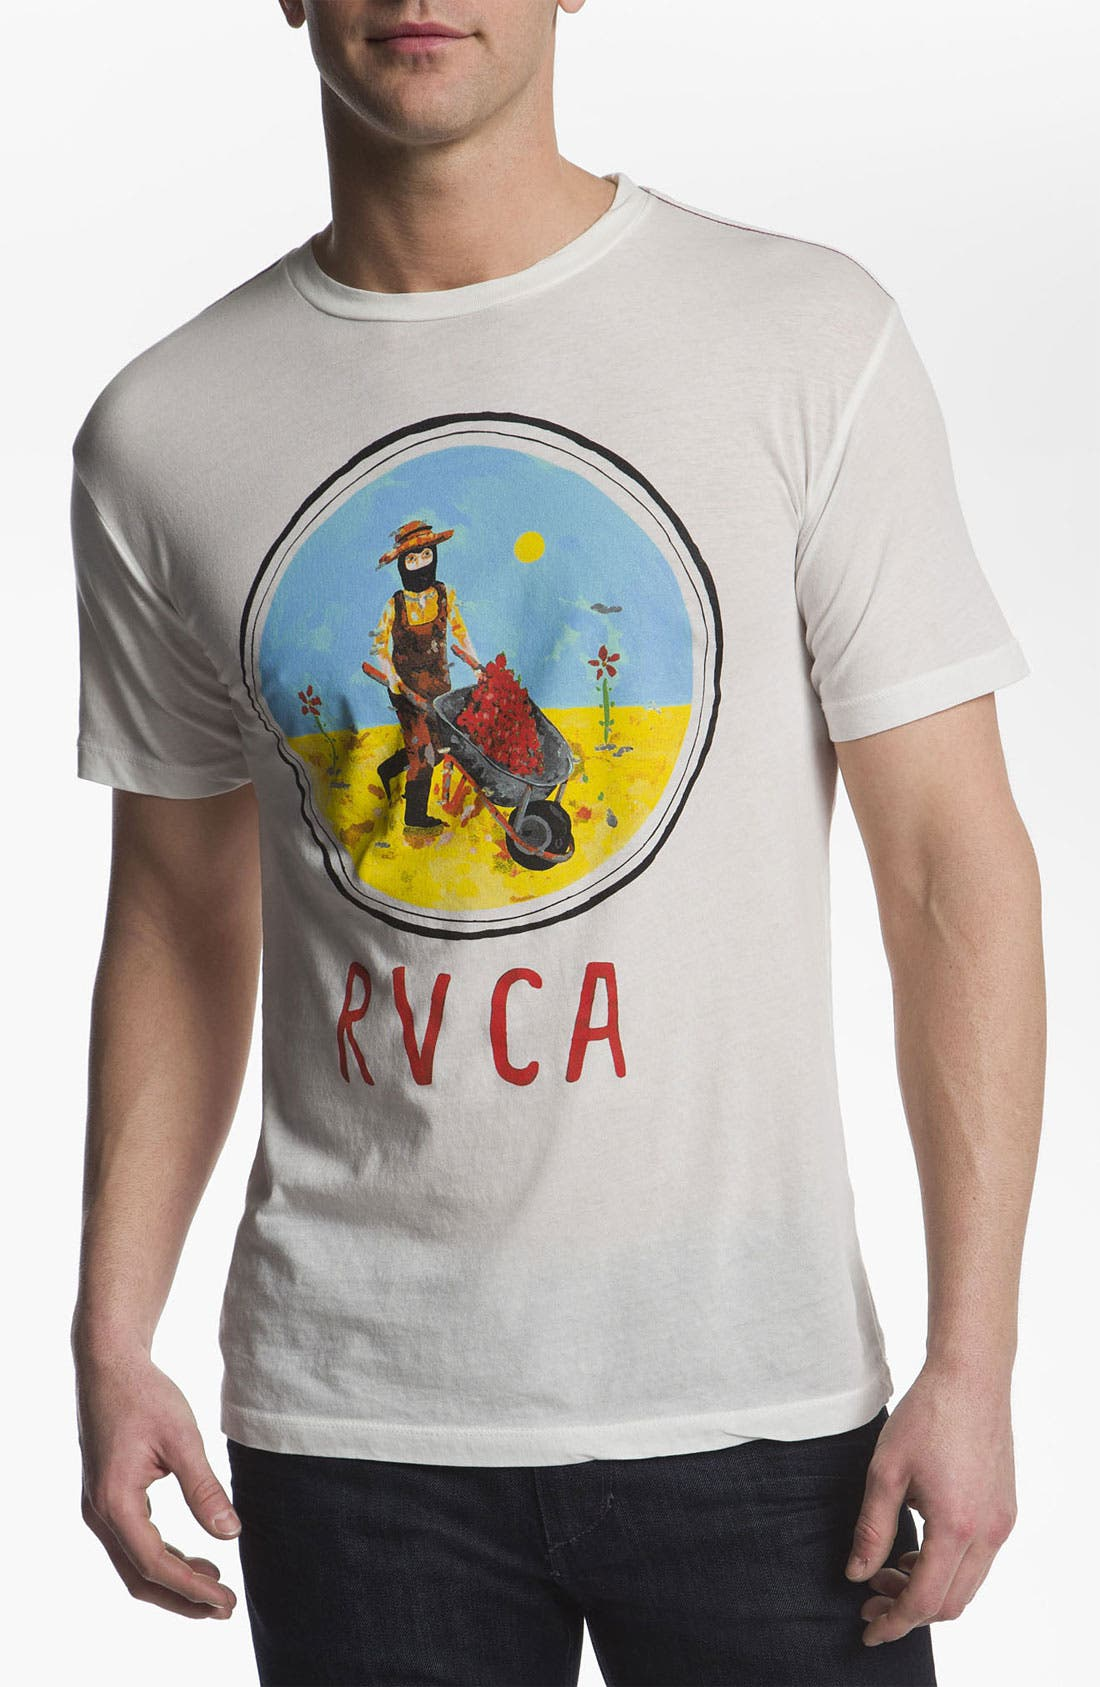 Alternate Image 1 Selected - RVCA 'Gardener' T-Shirt